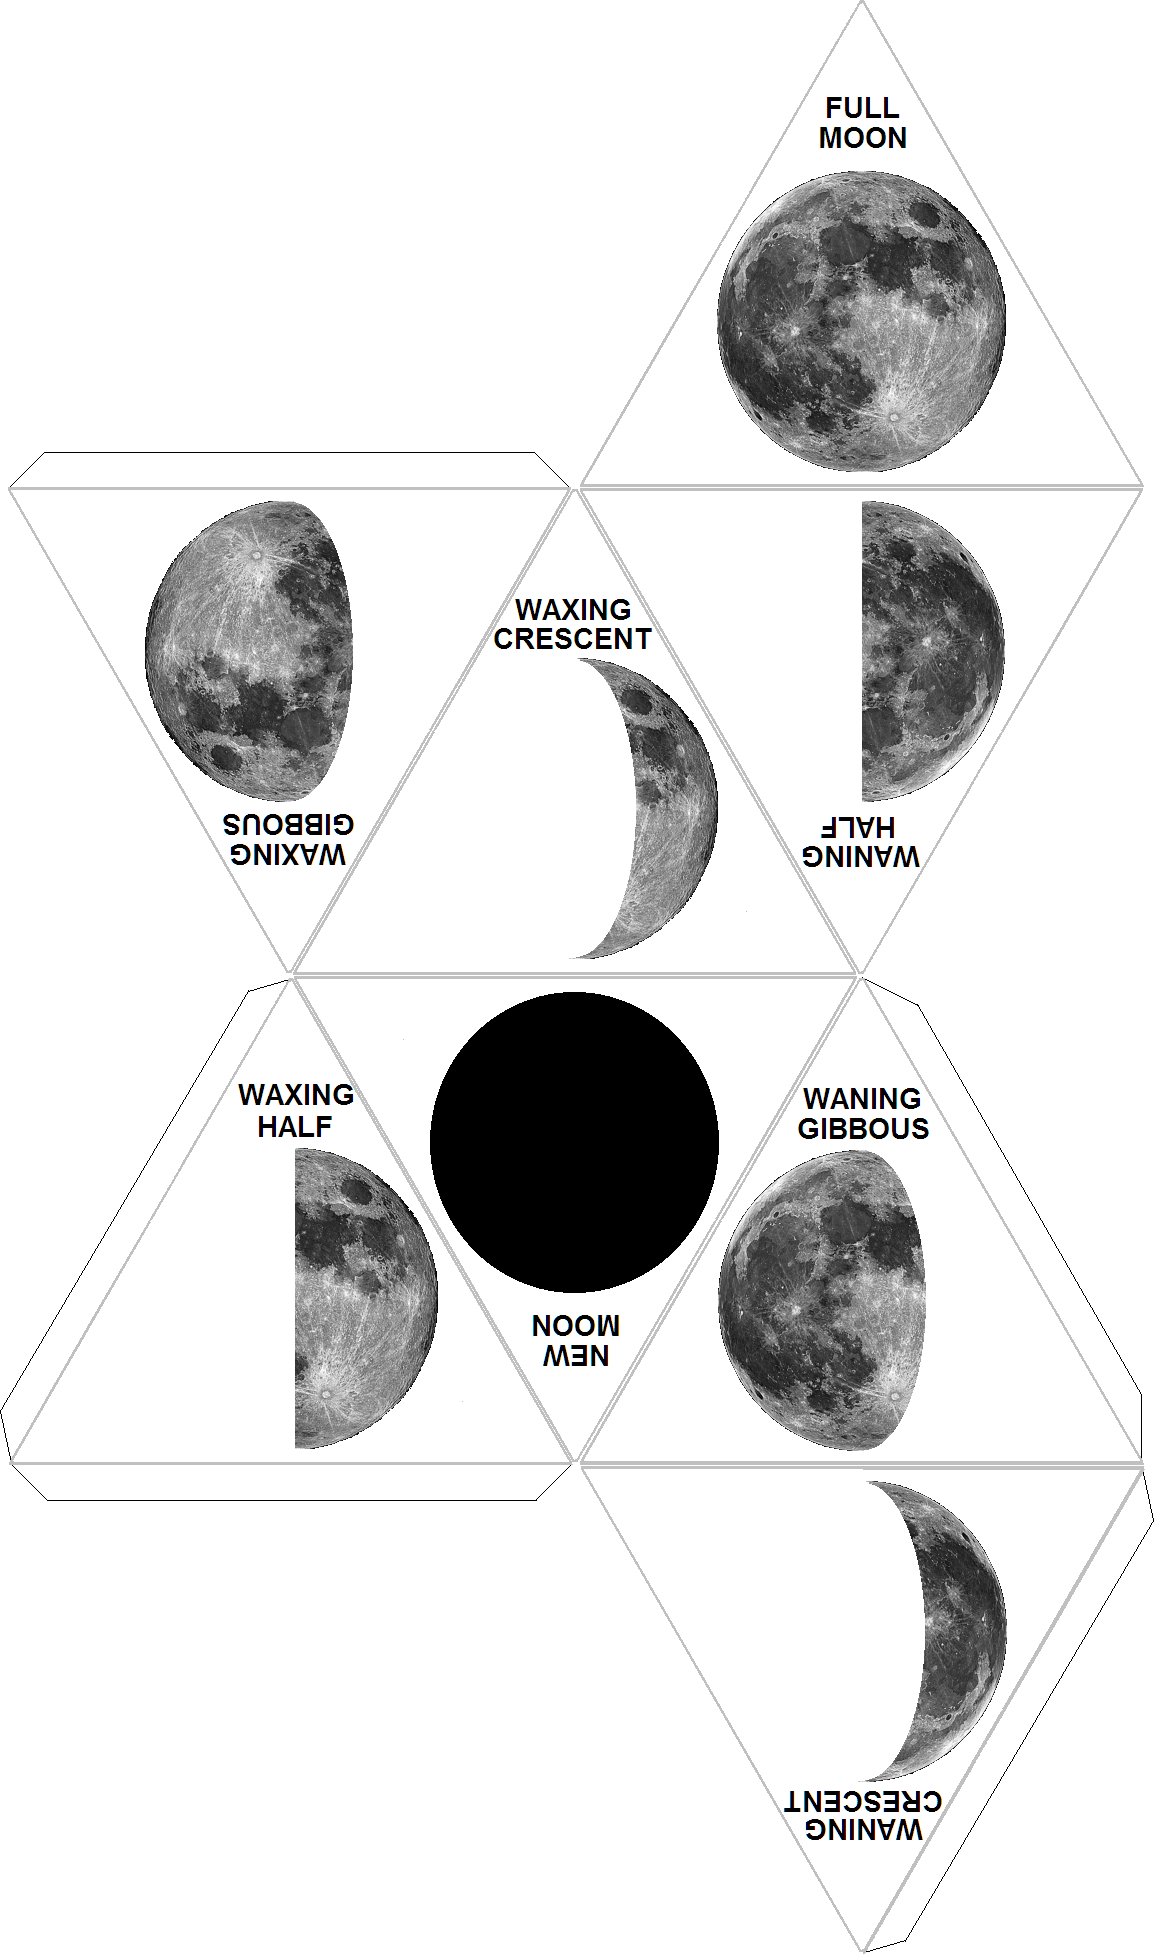 Create Moon Phases Foldable Leave Off The Names And Have Students Identify Phase After They Roll